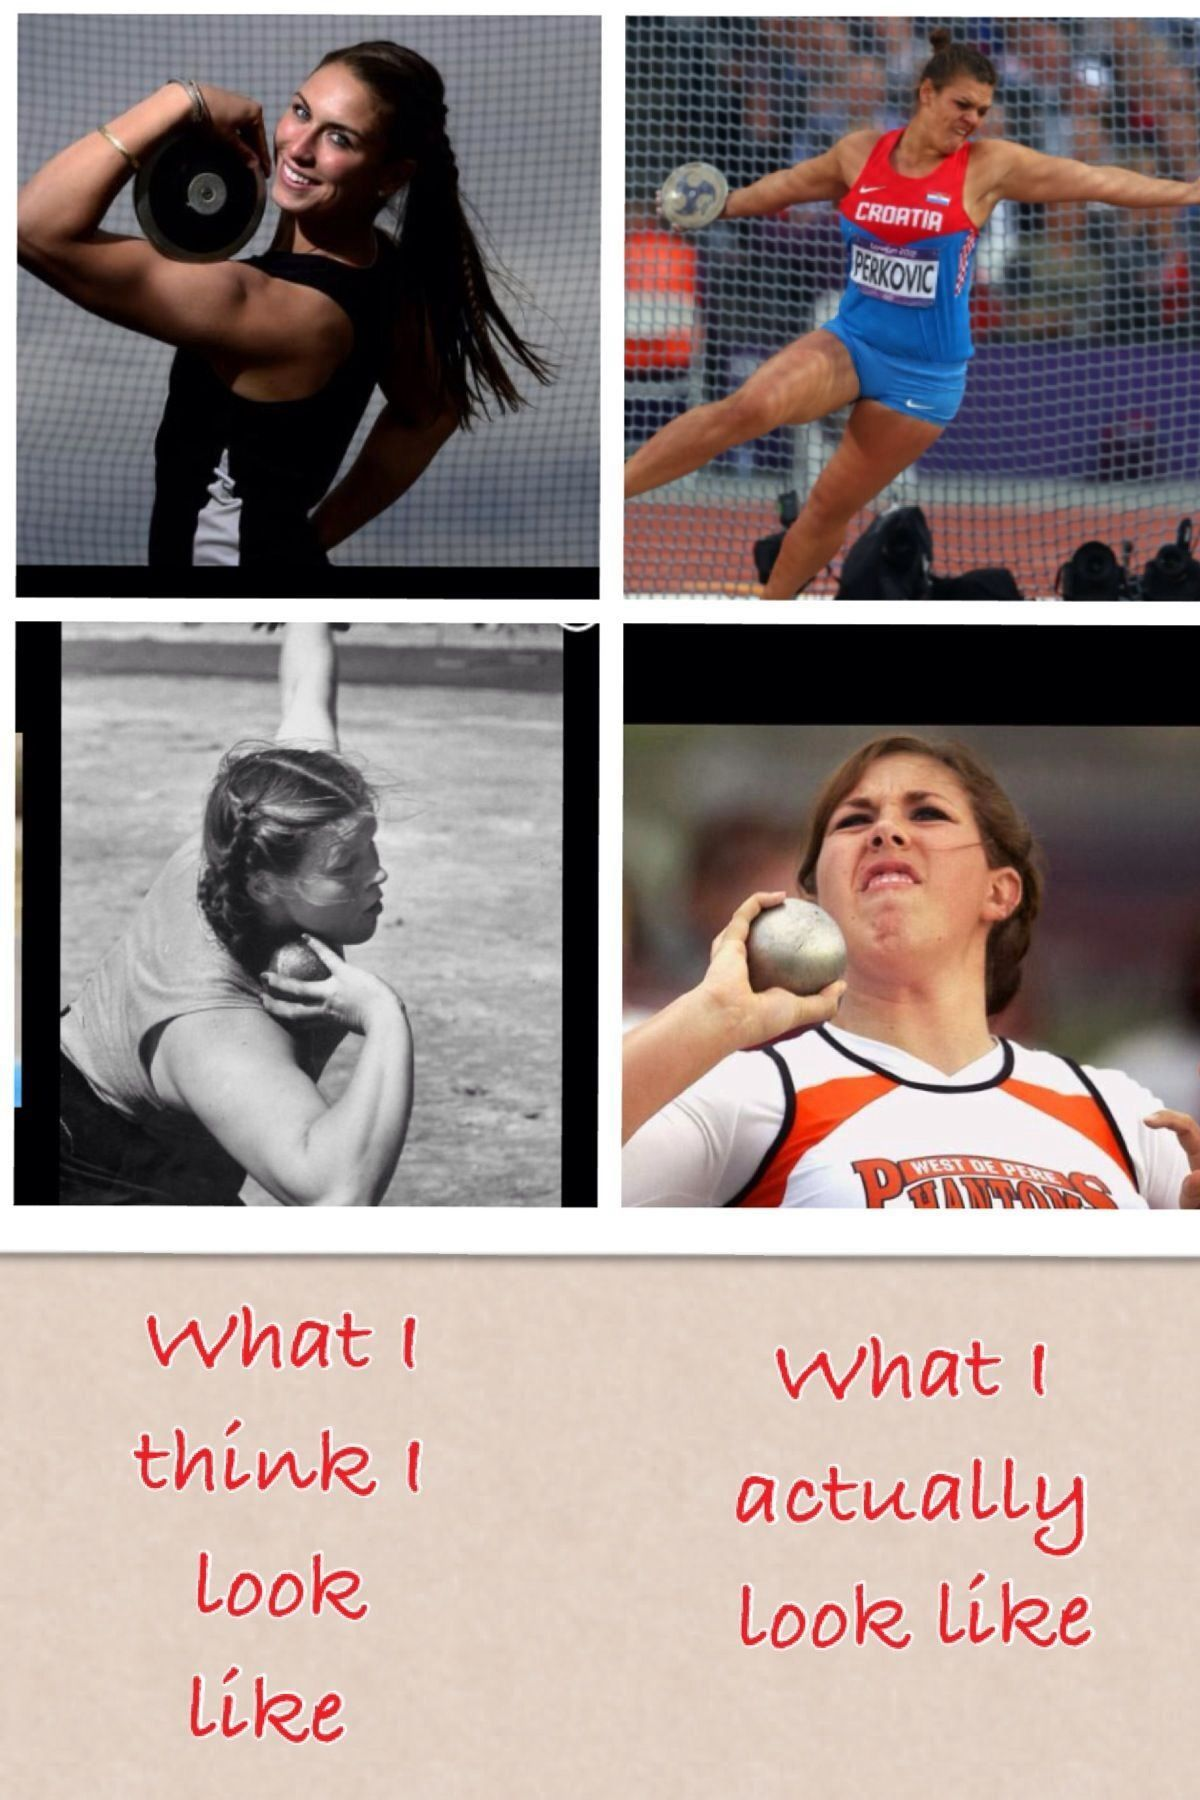 So true Shot put, Track and field, Discus thrower